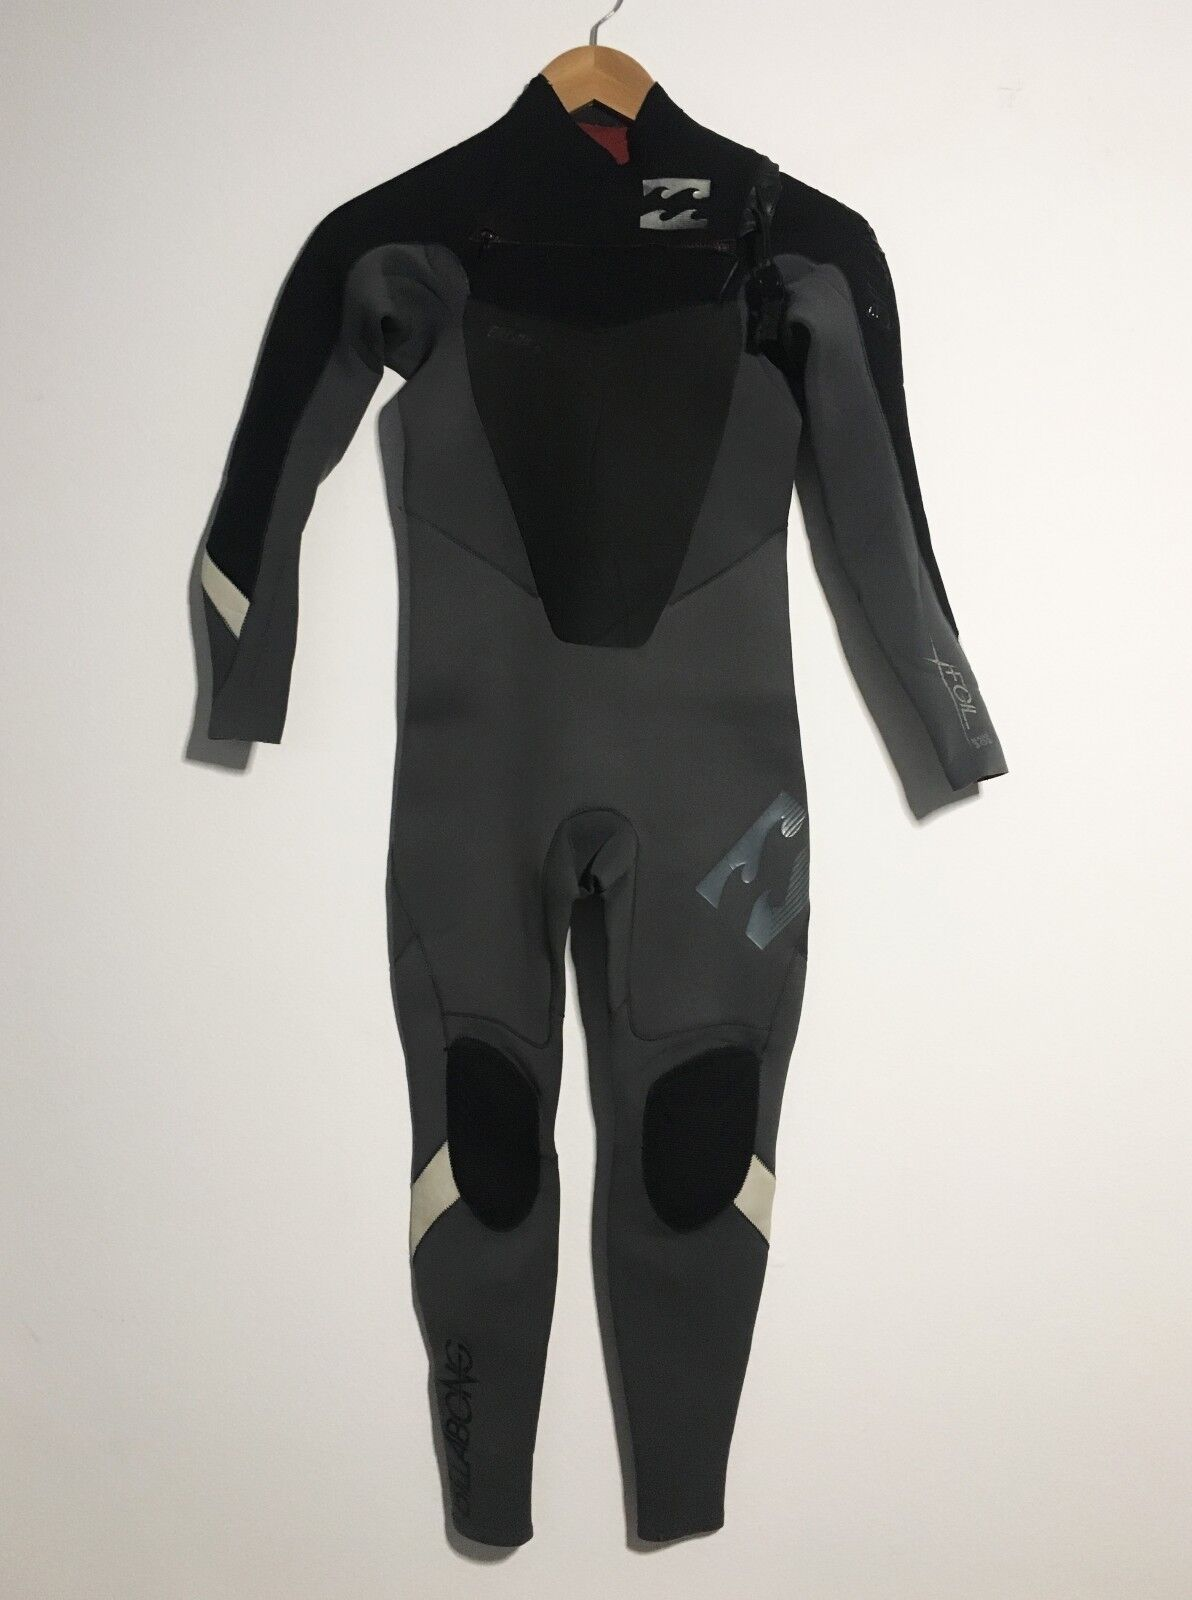 Billabong   lds Full Wetsuit Juniors Size 12 Foil 3 2 Sealed Youth Kids  -  170  your satisfaction is our target